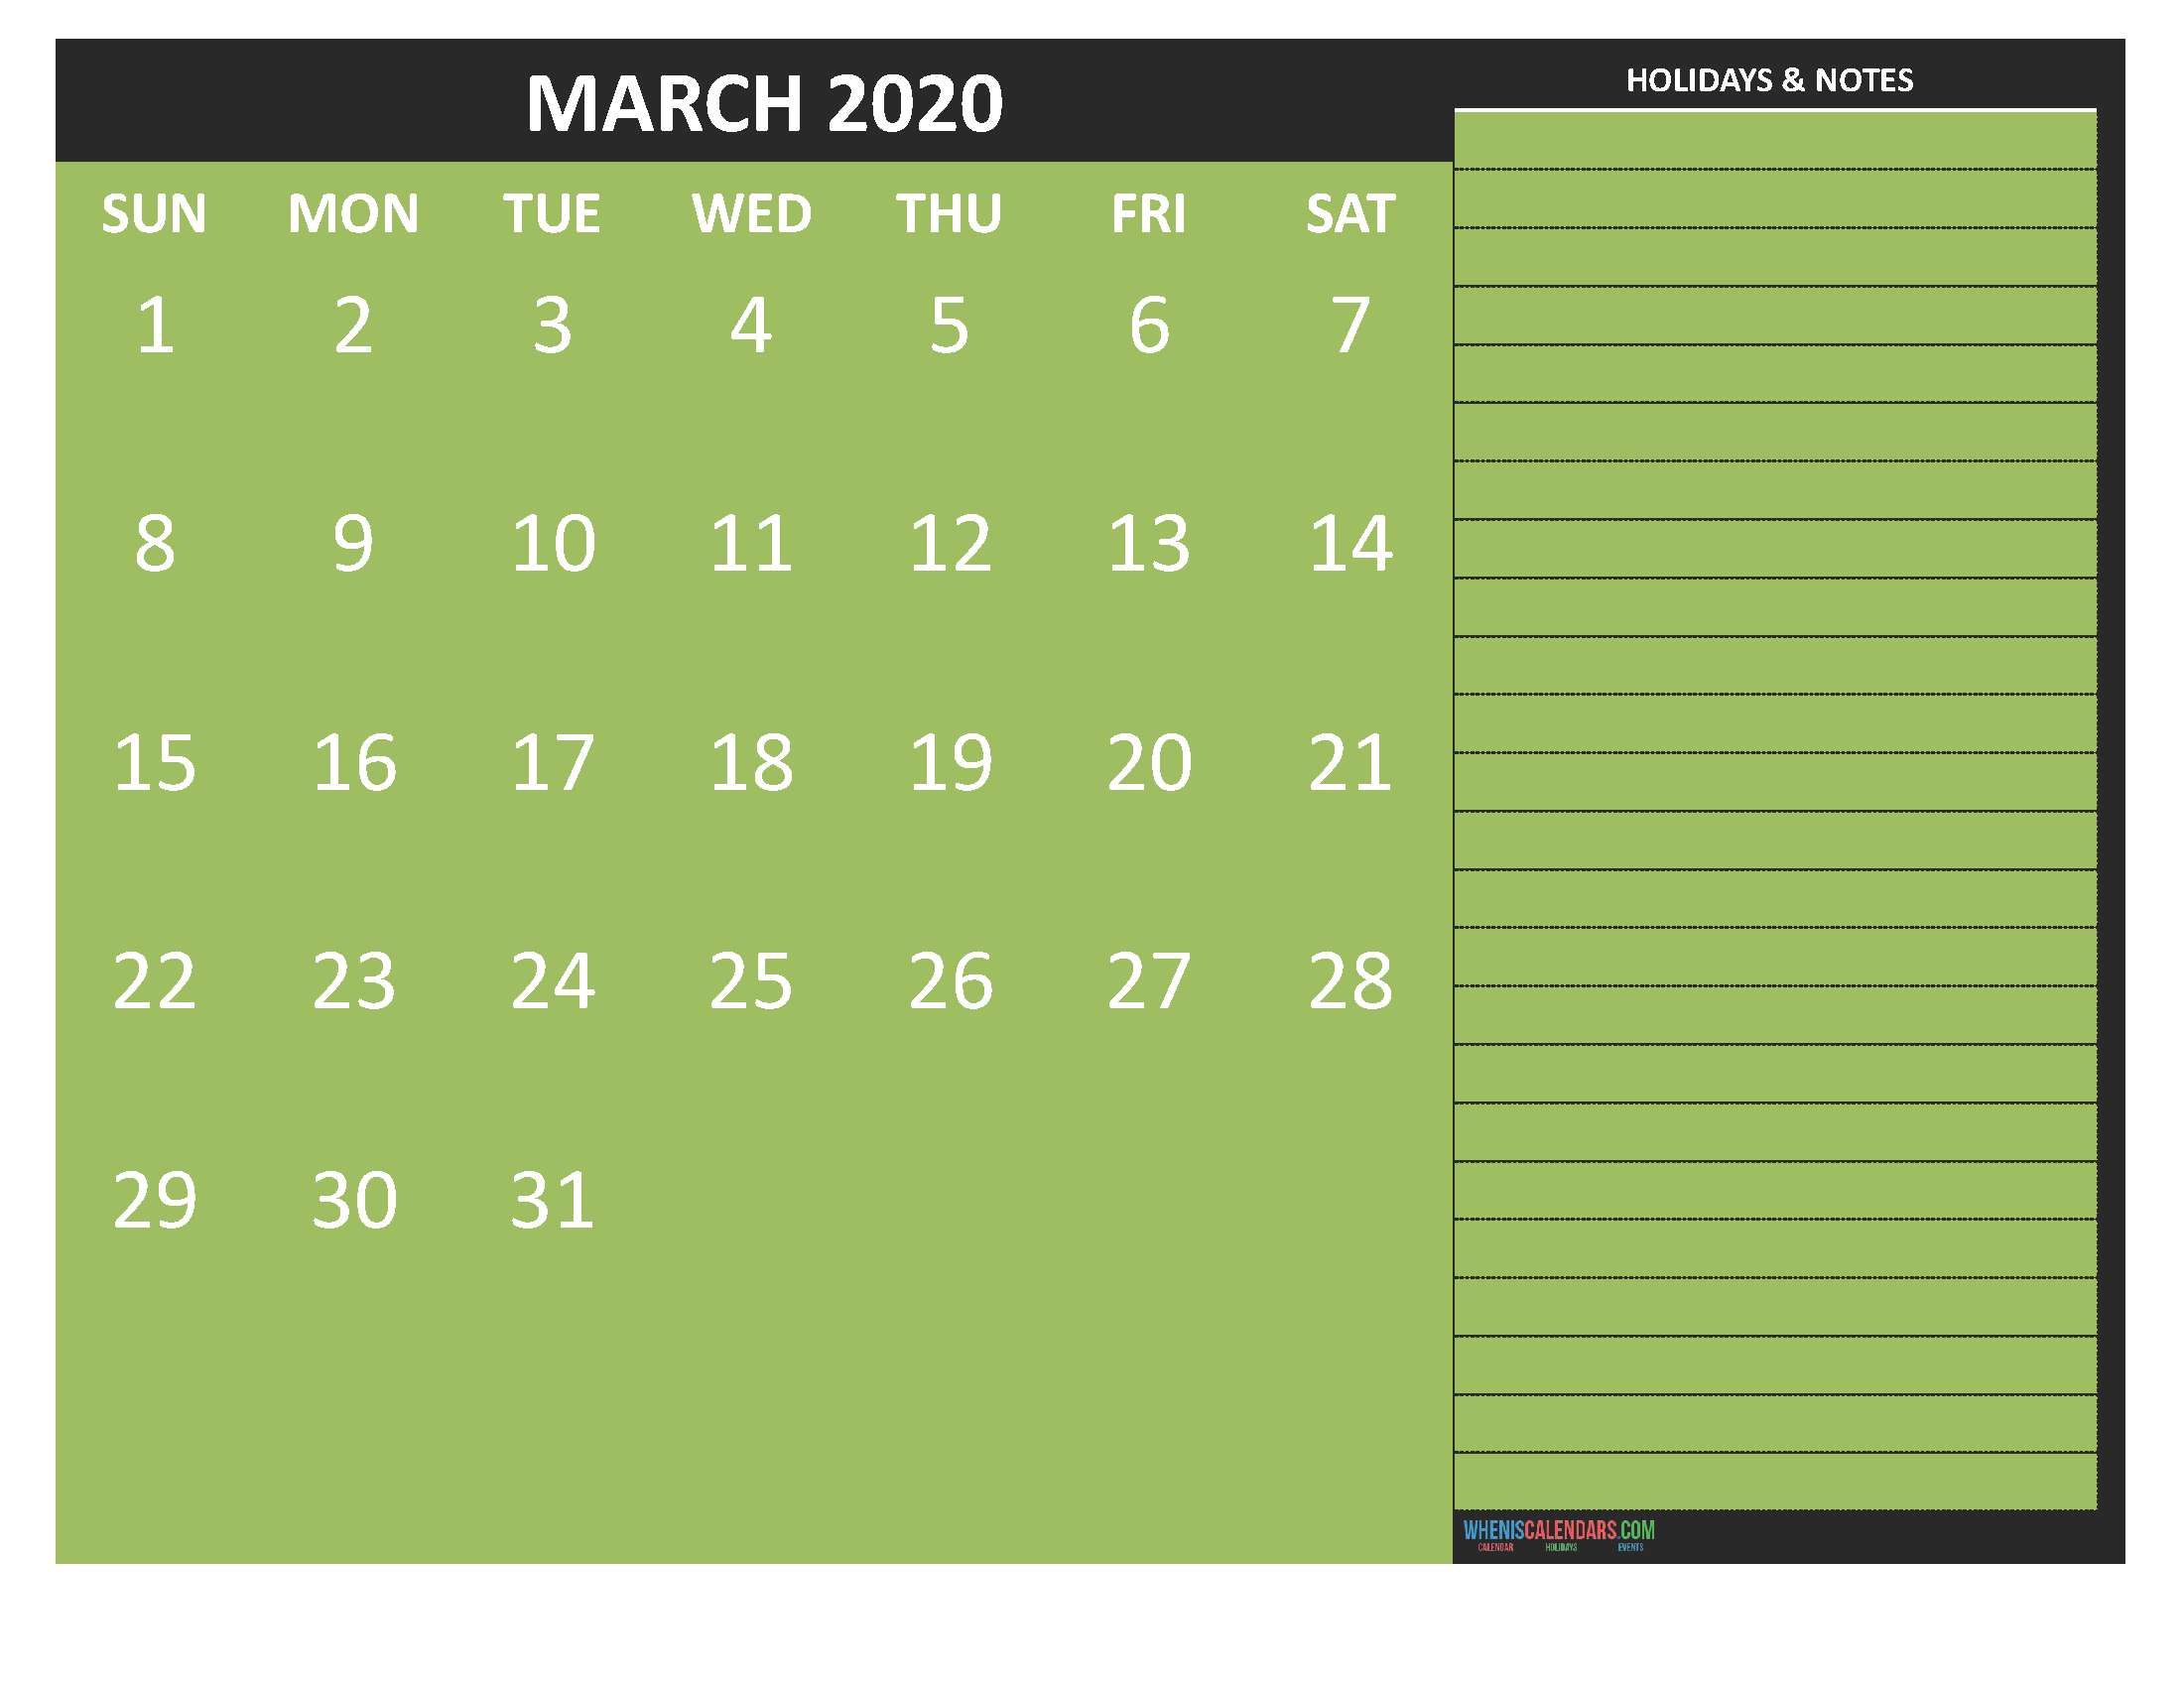 March 2020 Calendar with Holidays Free Printable by Word